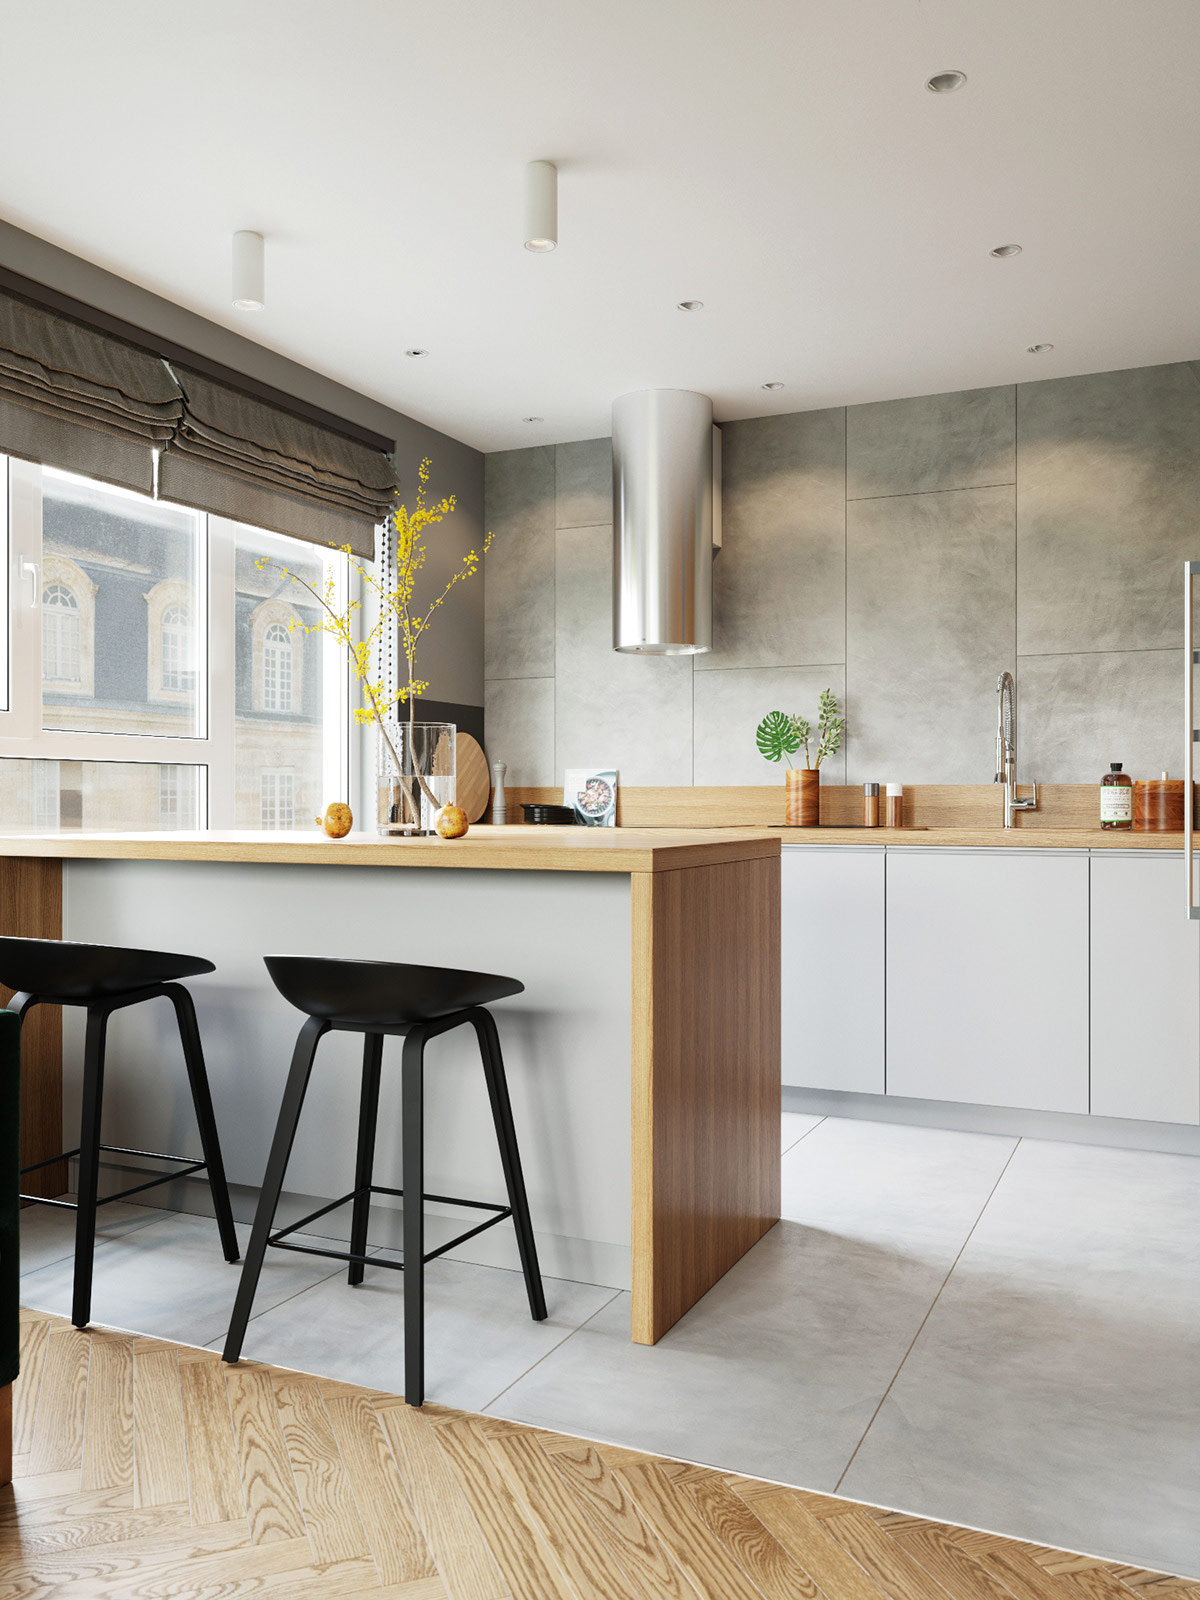 Eat In Kitchen Breakfast Bar With Modern Counter Height Stools Awesome Decors